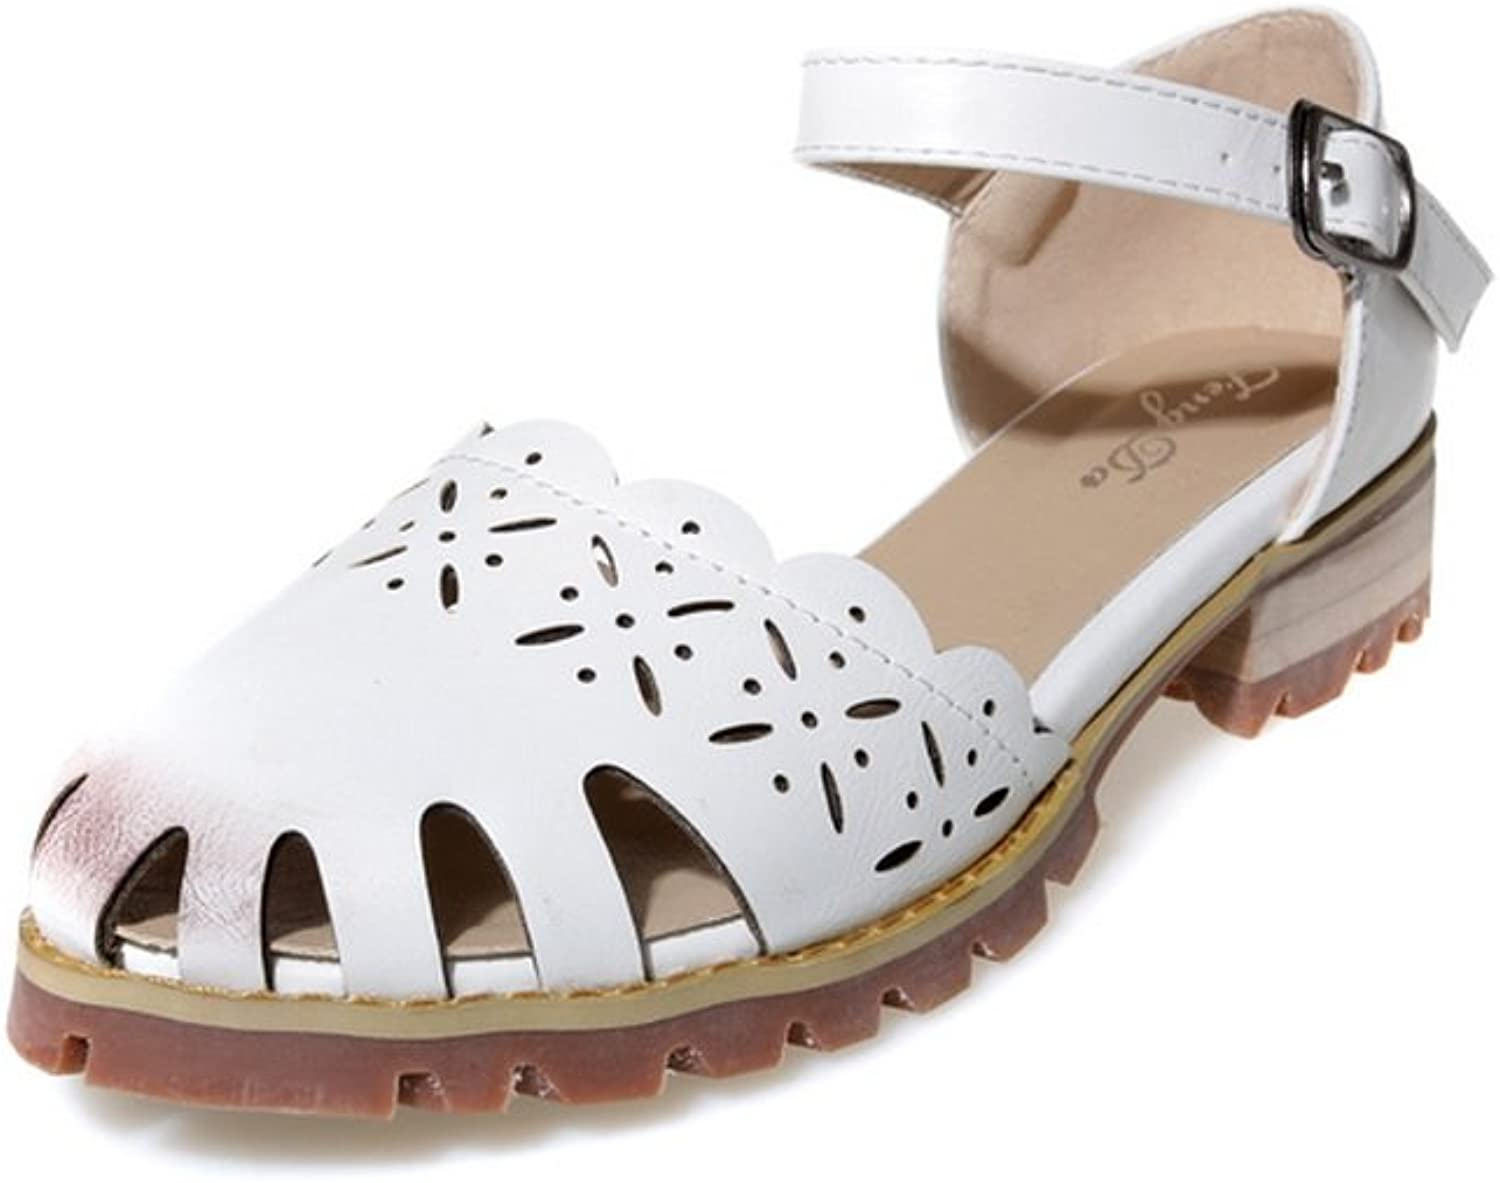 AdeeSu Womens Buckle Hollow Out Square Heels Urethane Flats shoes